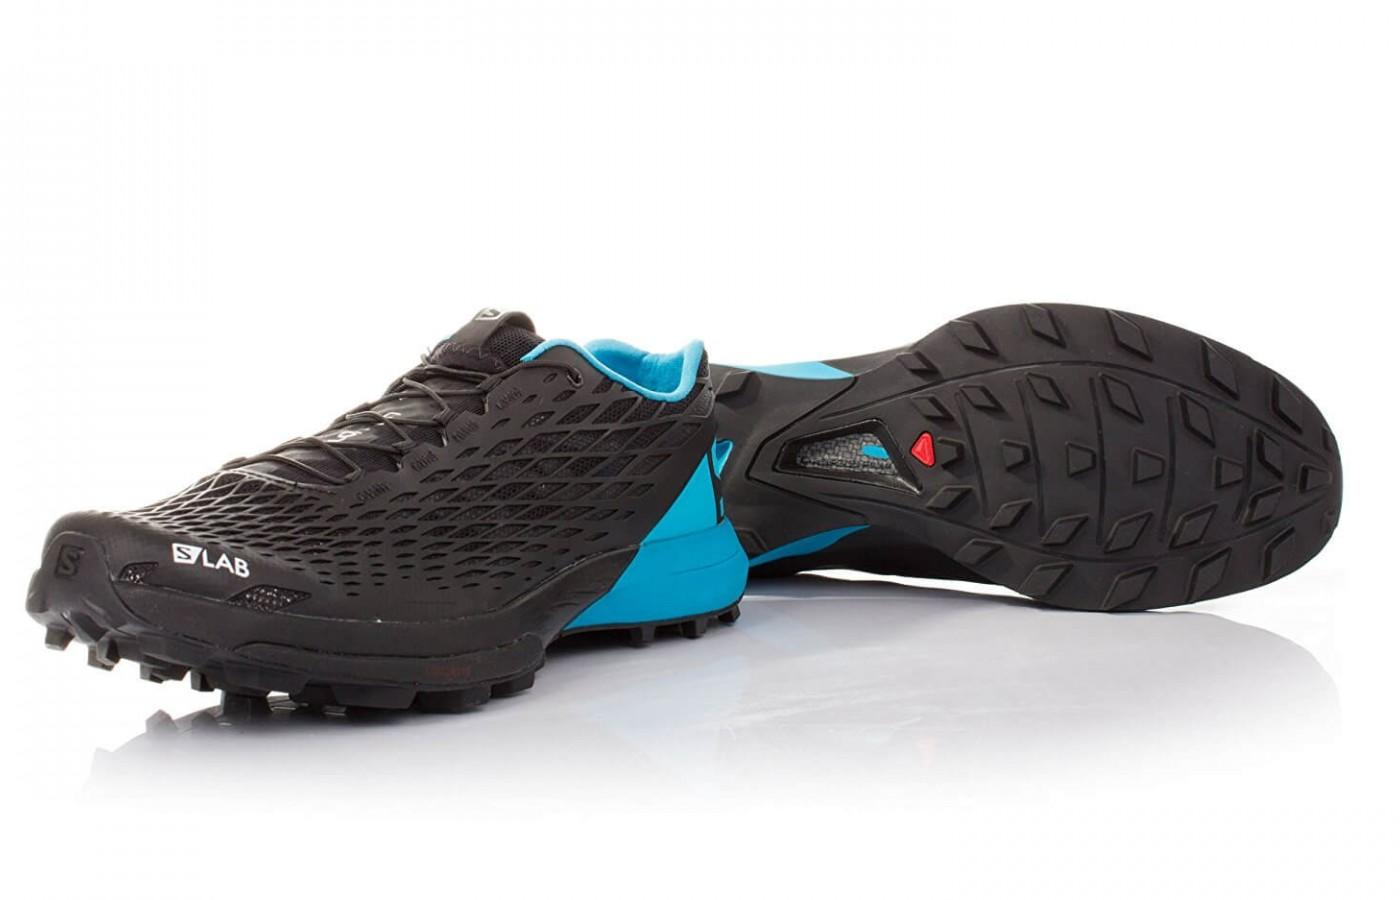 Salomon S LAB XA Amphib Trail Running Shoe Review | Altitude